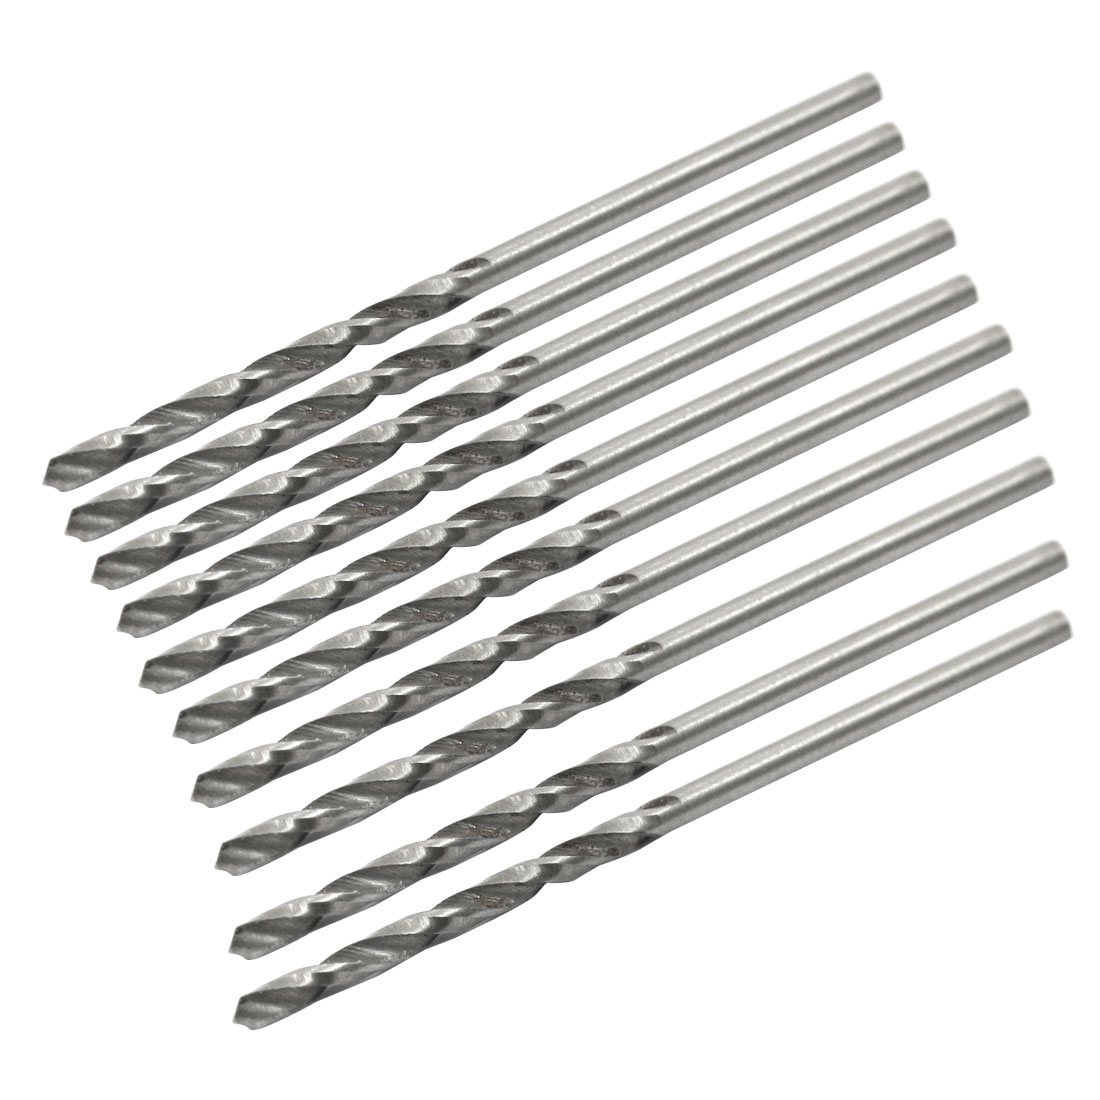 High Speed Steel 1.6mm Dia Split Point 45mm Long Twist Drill Bits 10 Pcs